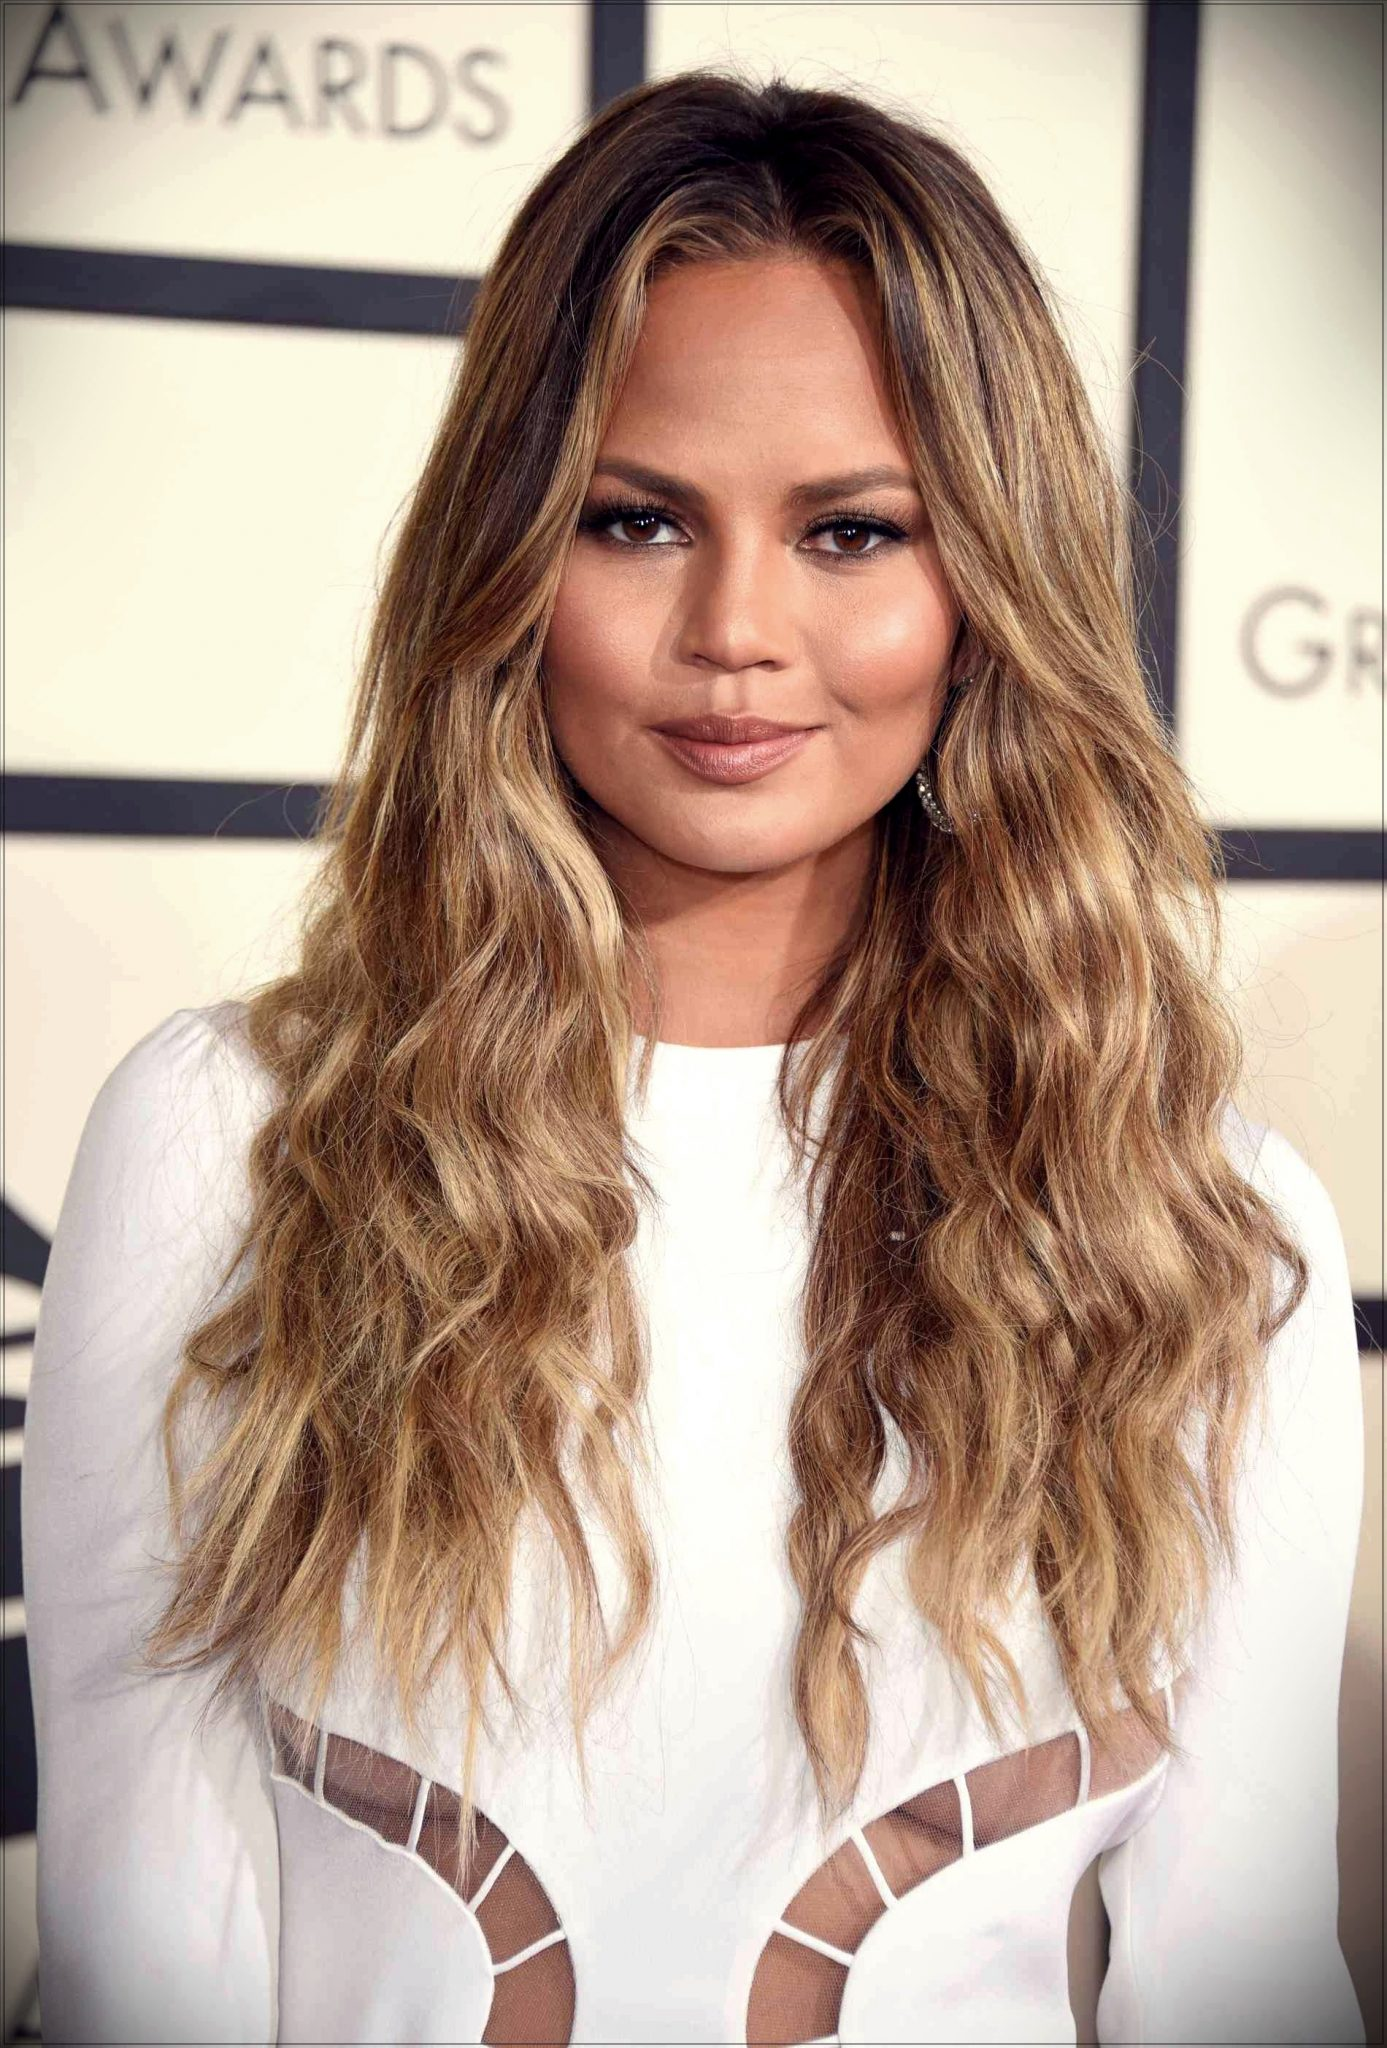 Hairstyles for every type of hair texture - hairstyles for every type of hair texture 5